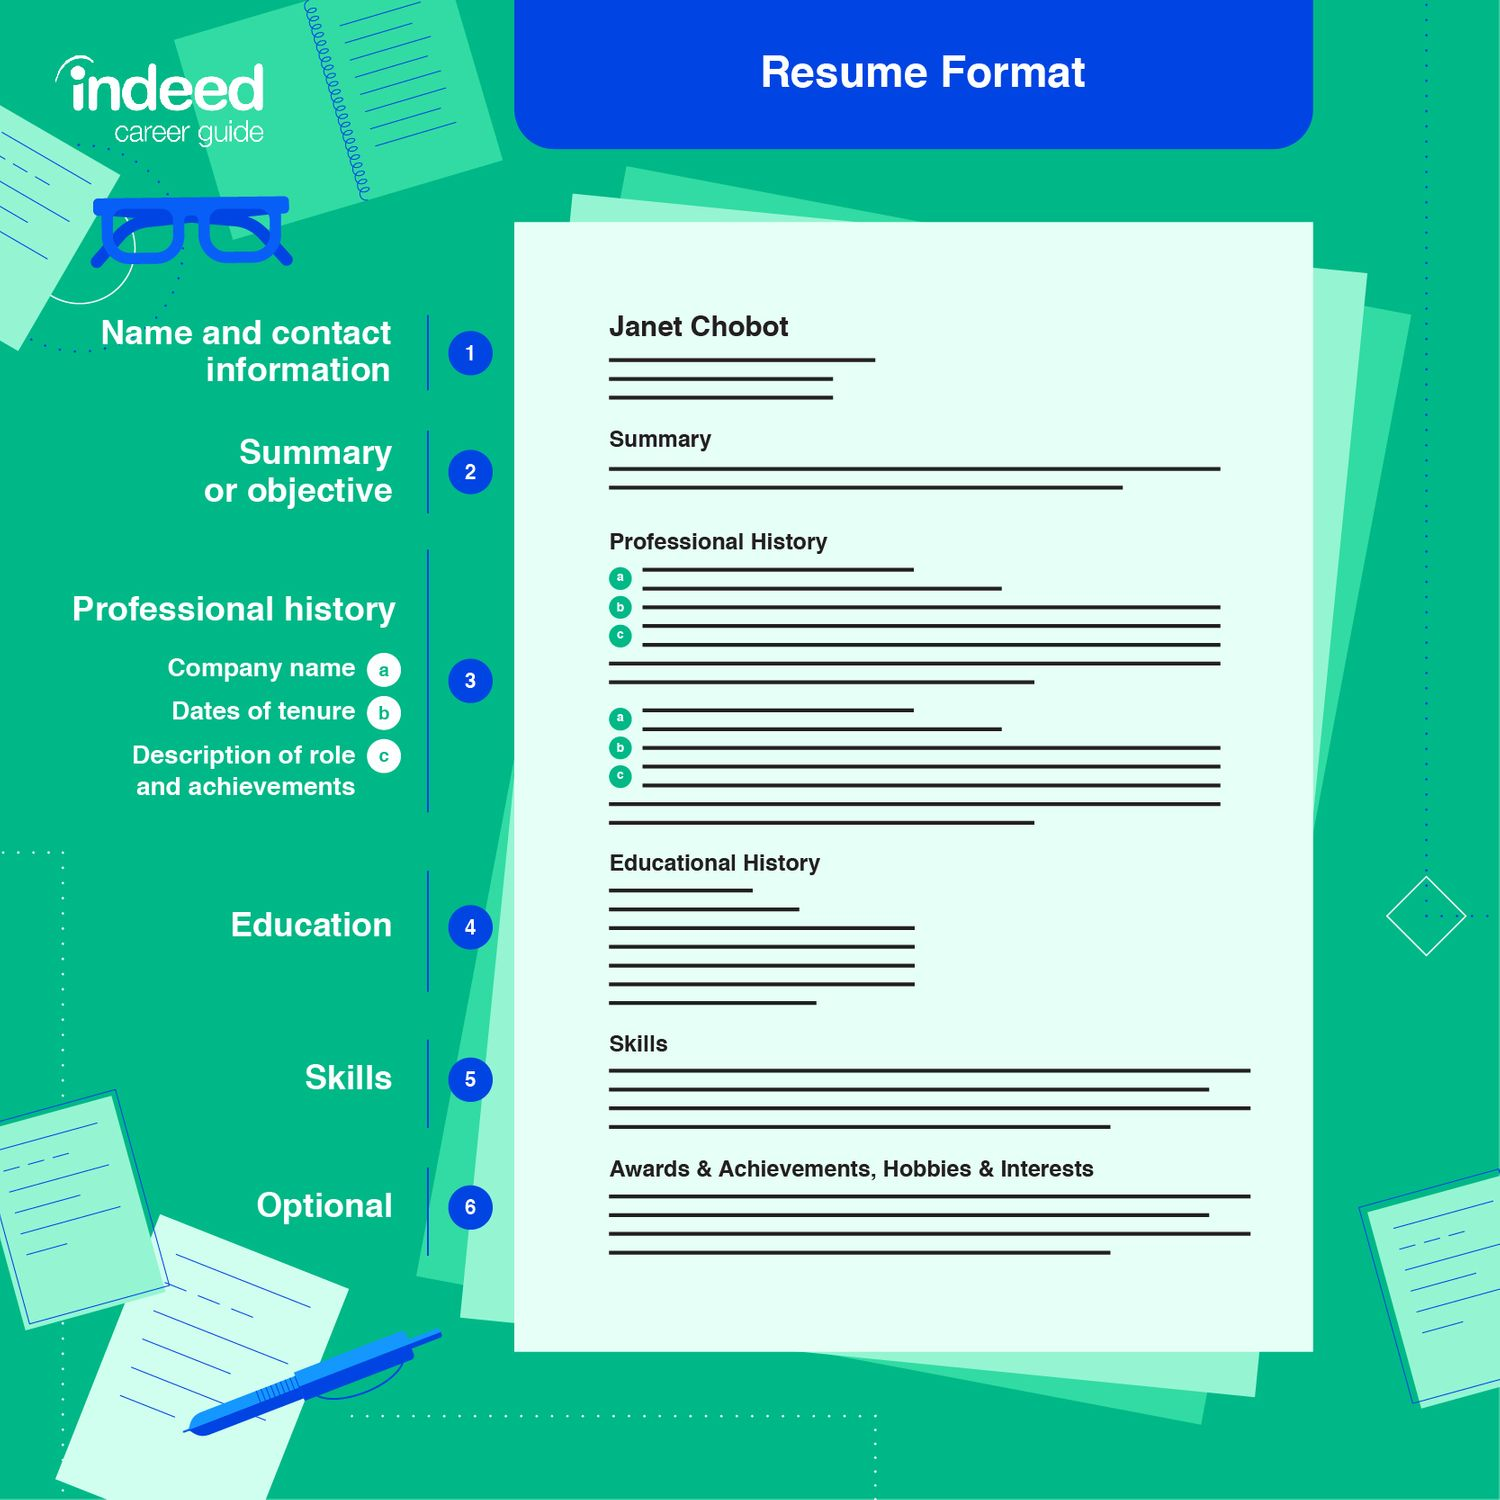 best resume fonts to choose type and size indeed standard font for resized requirements Resume Standard Font Size For Resume